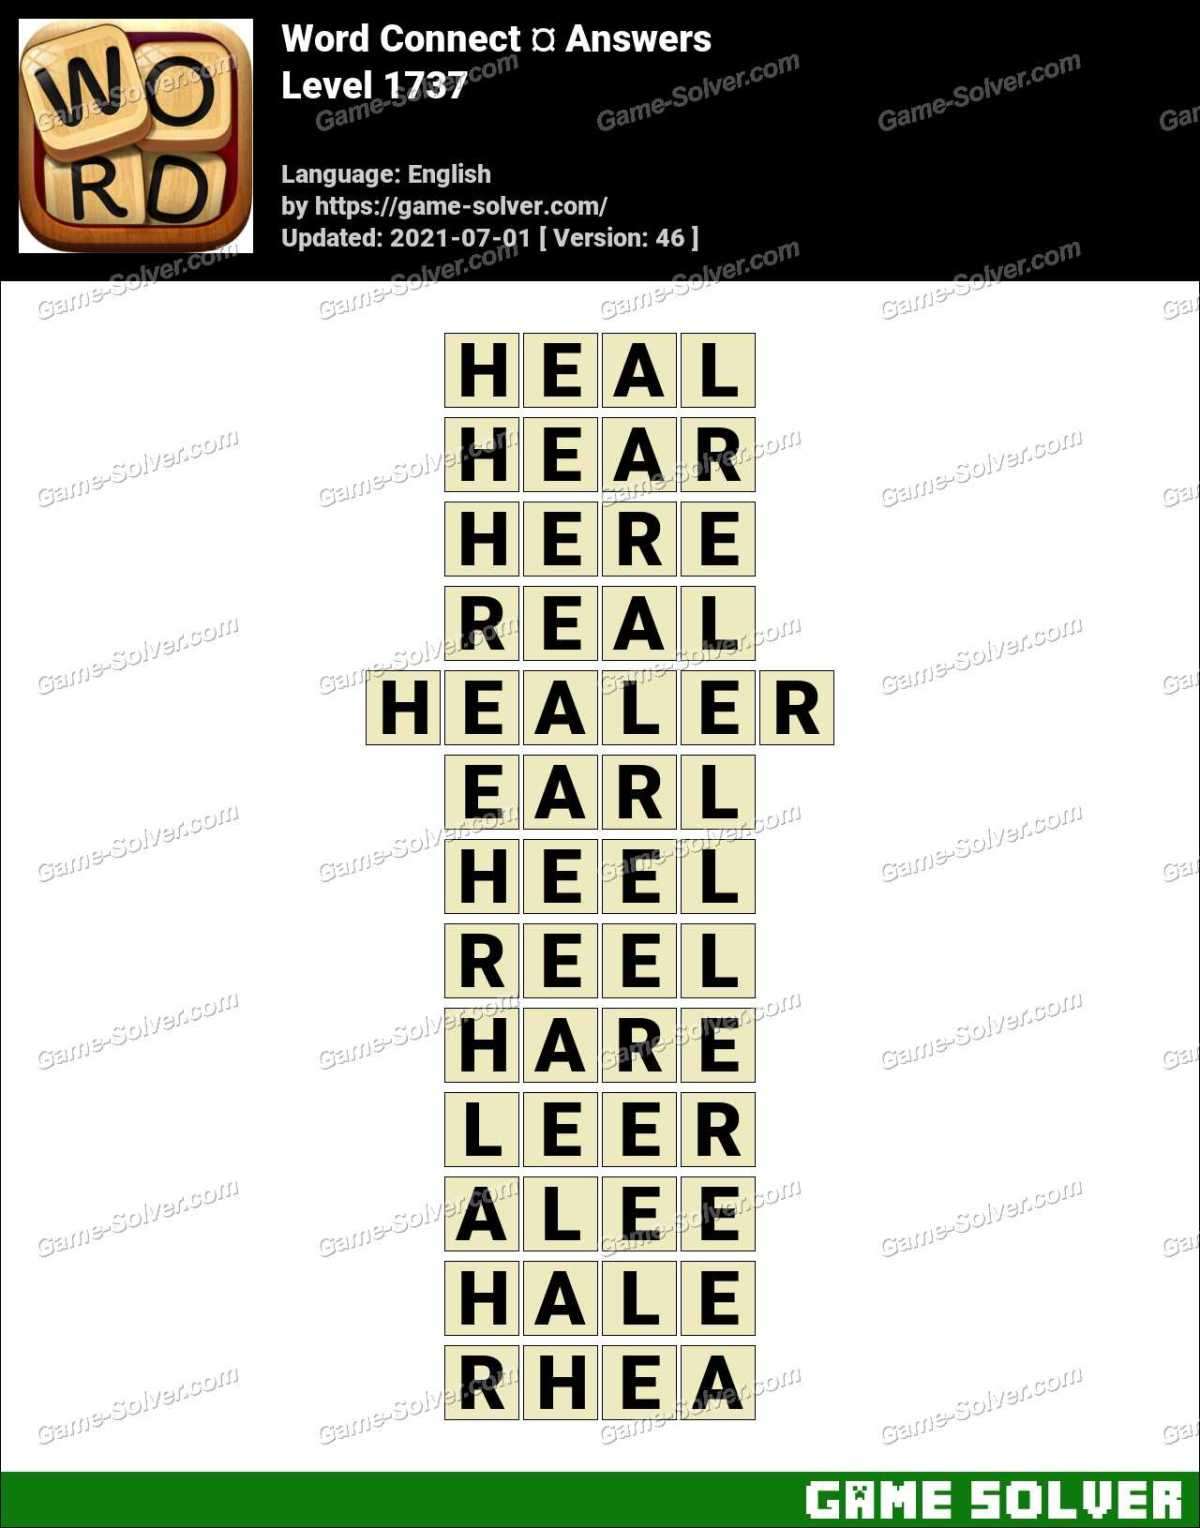 Word Connect Level 1737 Answers